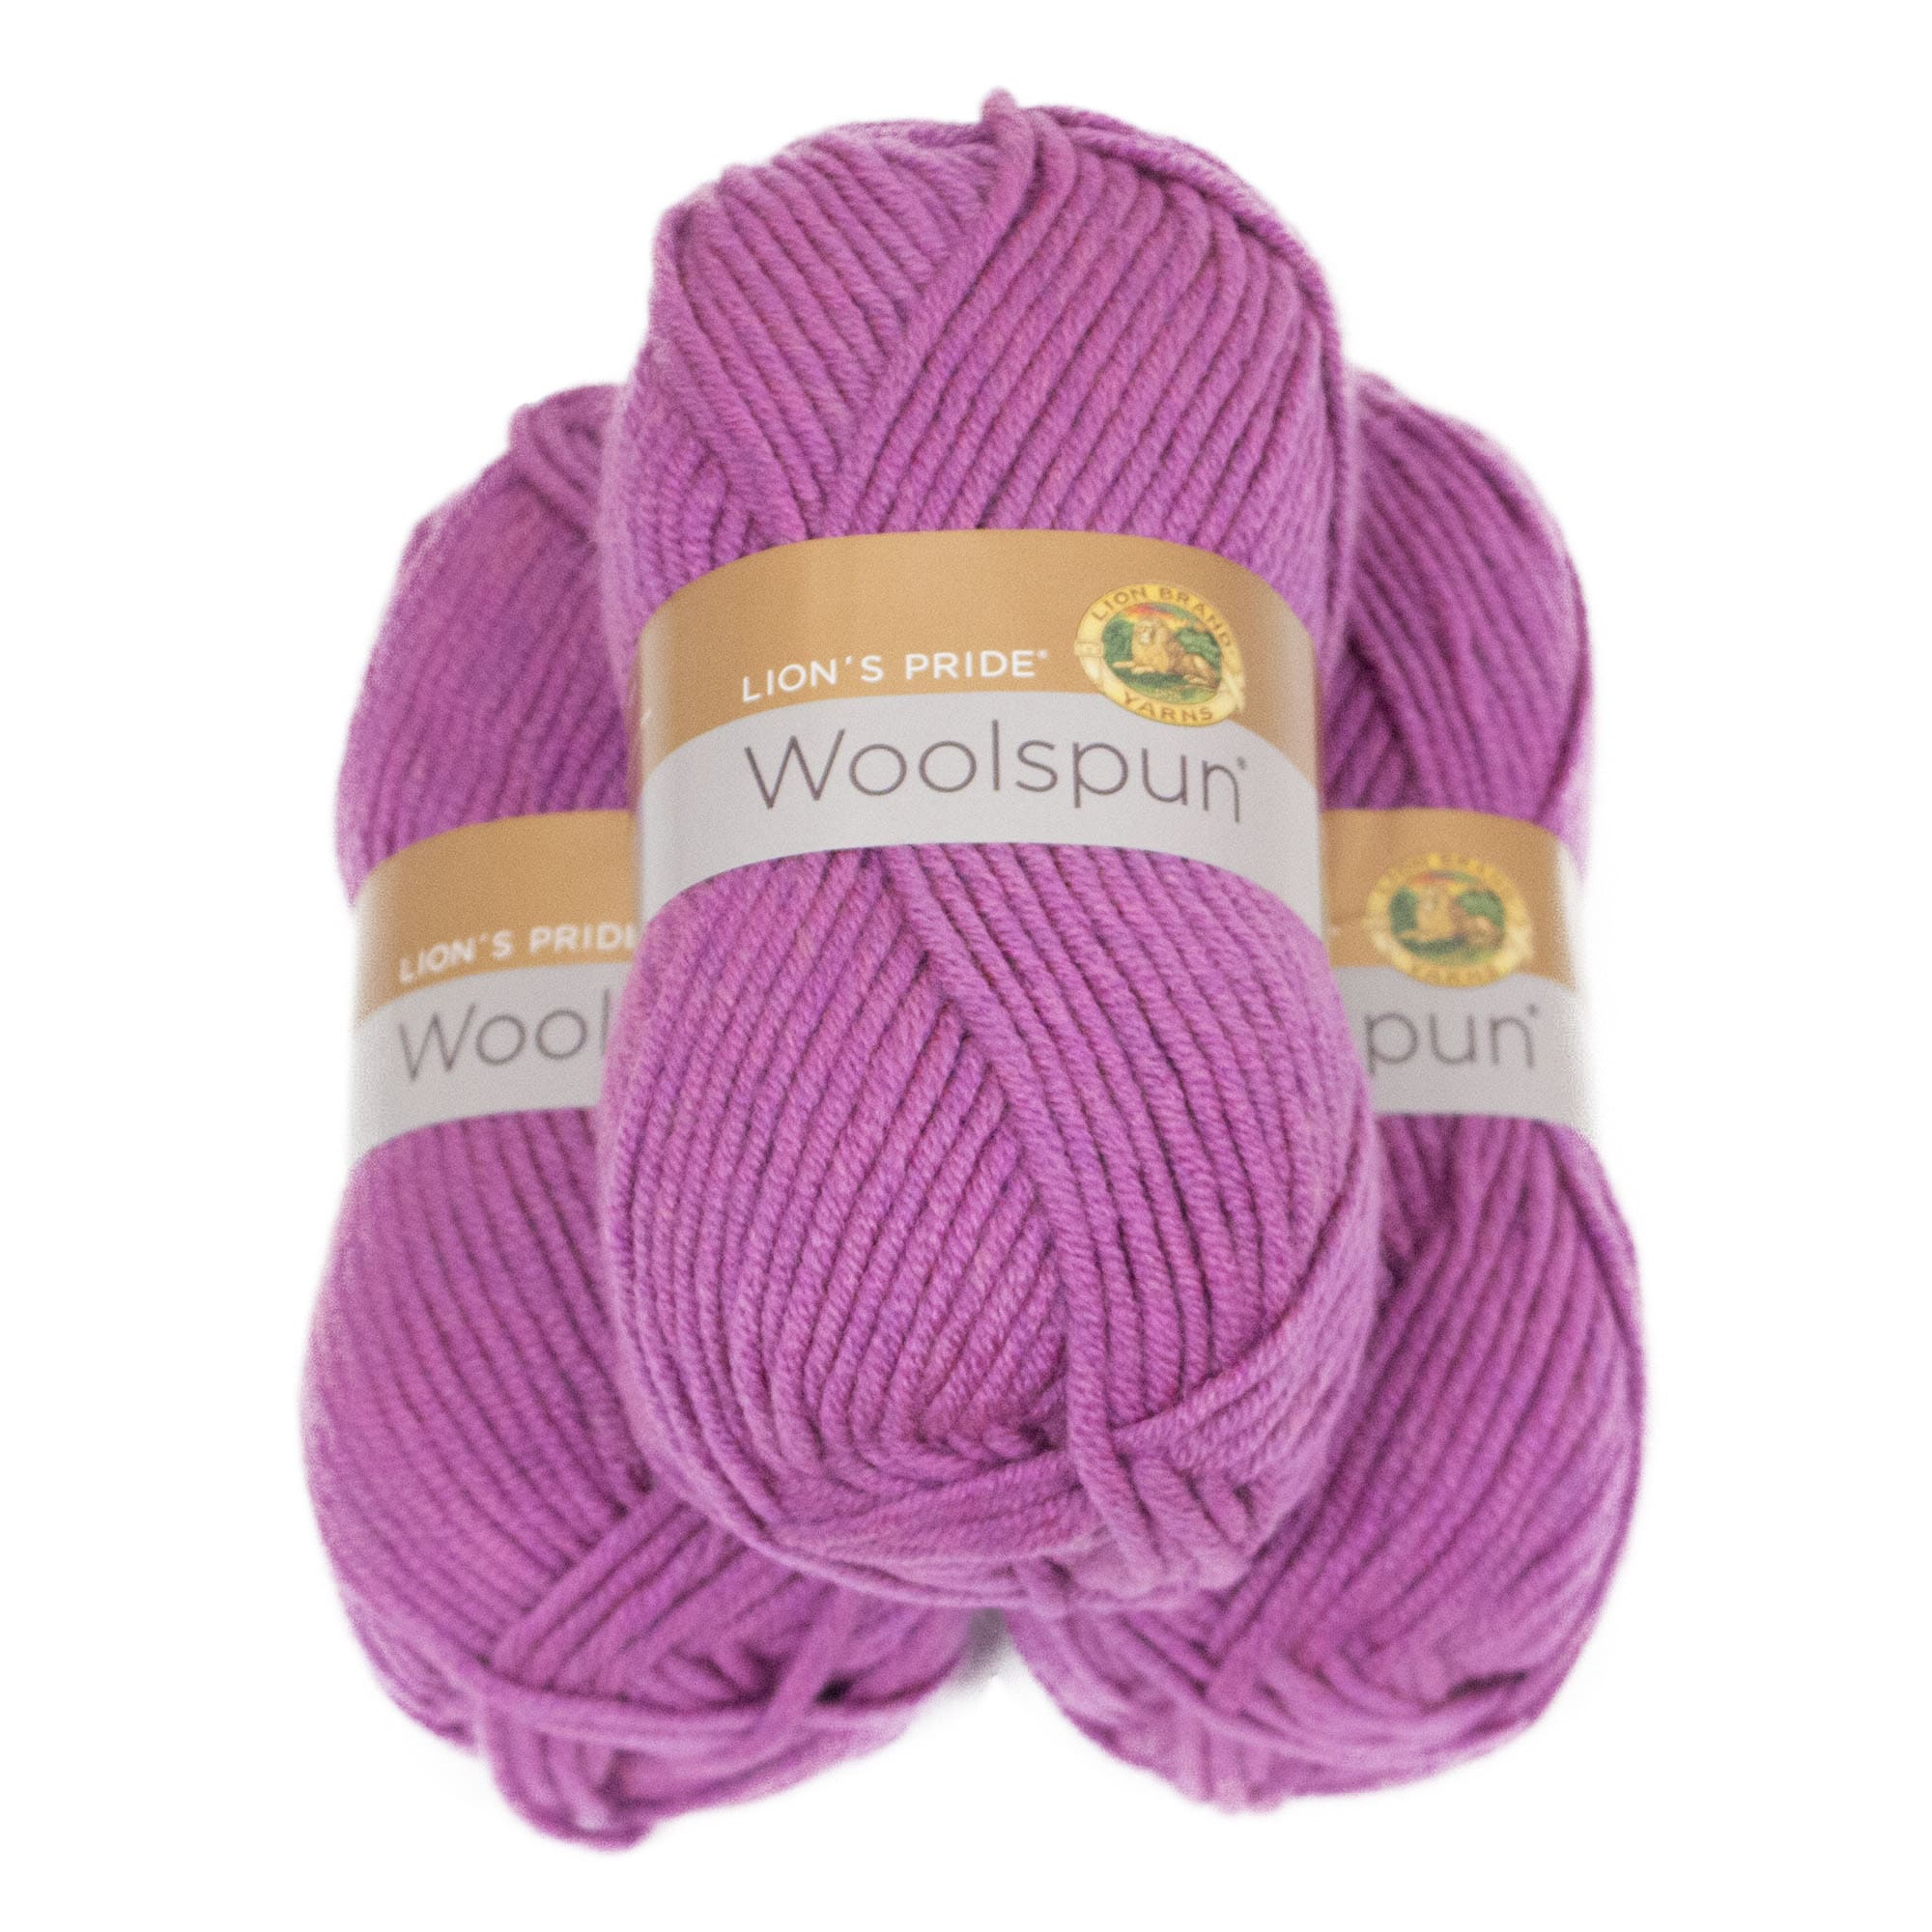 Shop Lion Brand Yarn Lions Pride Woolspun Orchid 671 142 3 Pack